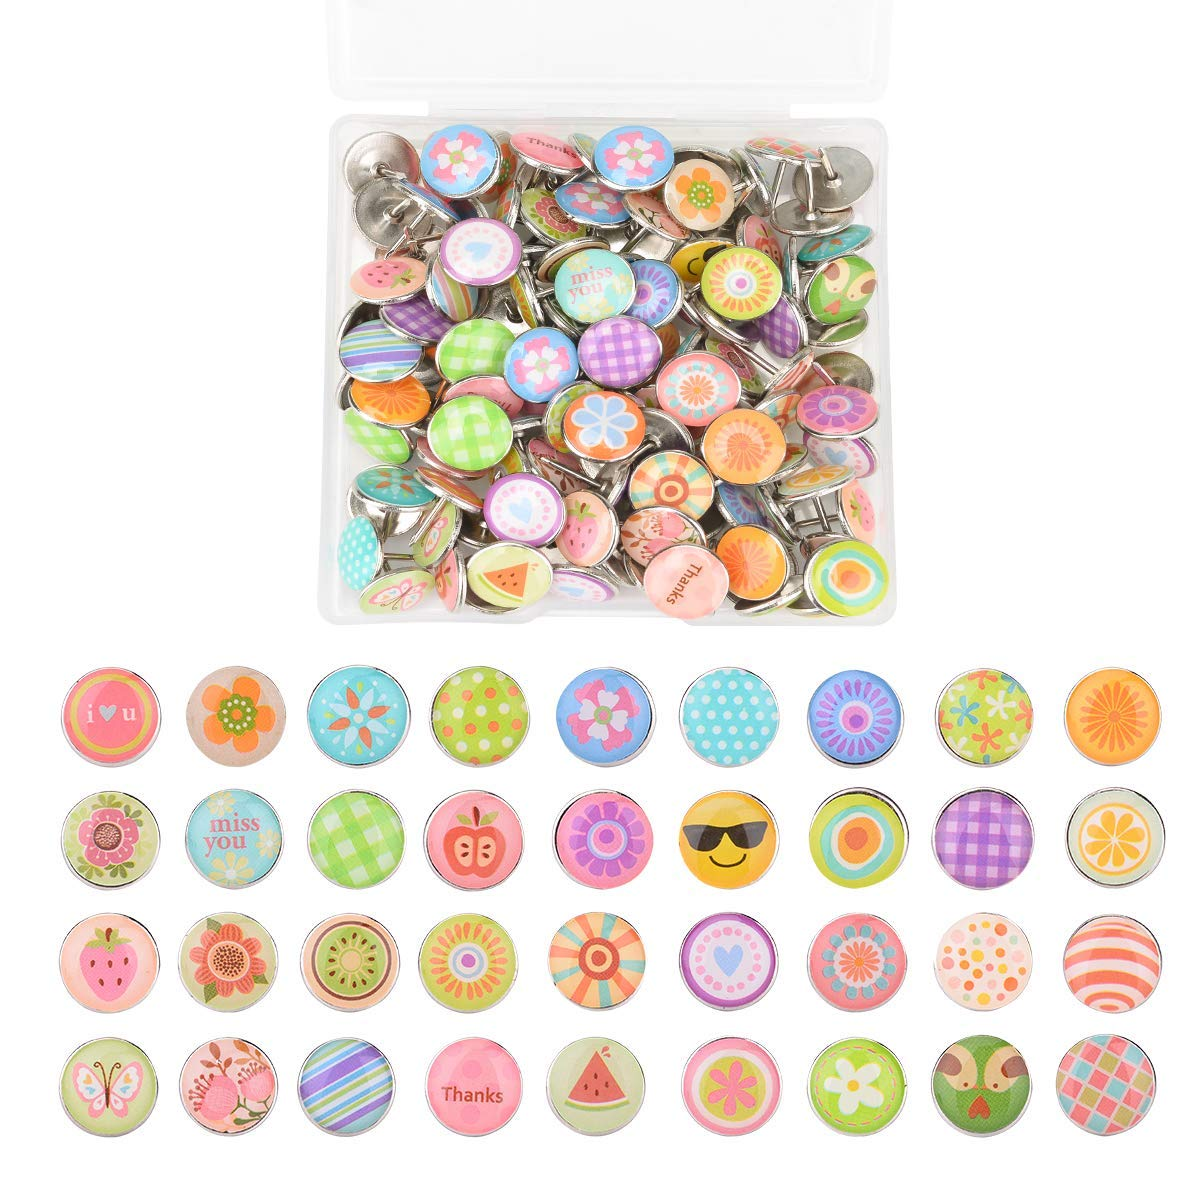 Autrix 120 Pieces Fashion Push Pins Creative Thumb Tacks for Photos Wall, Maps, Bulletin Board or Cork Boards with a Storage Box, 38 Different Patterns